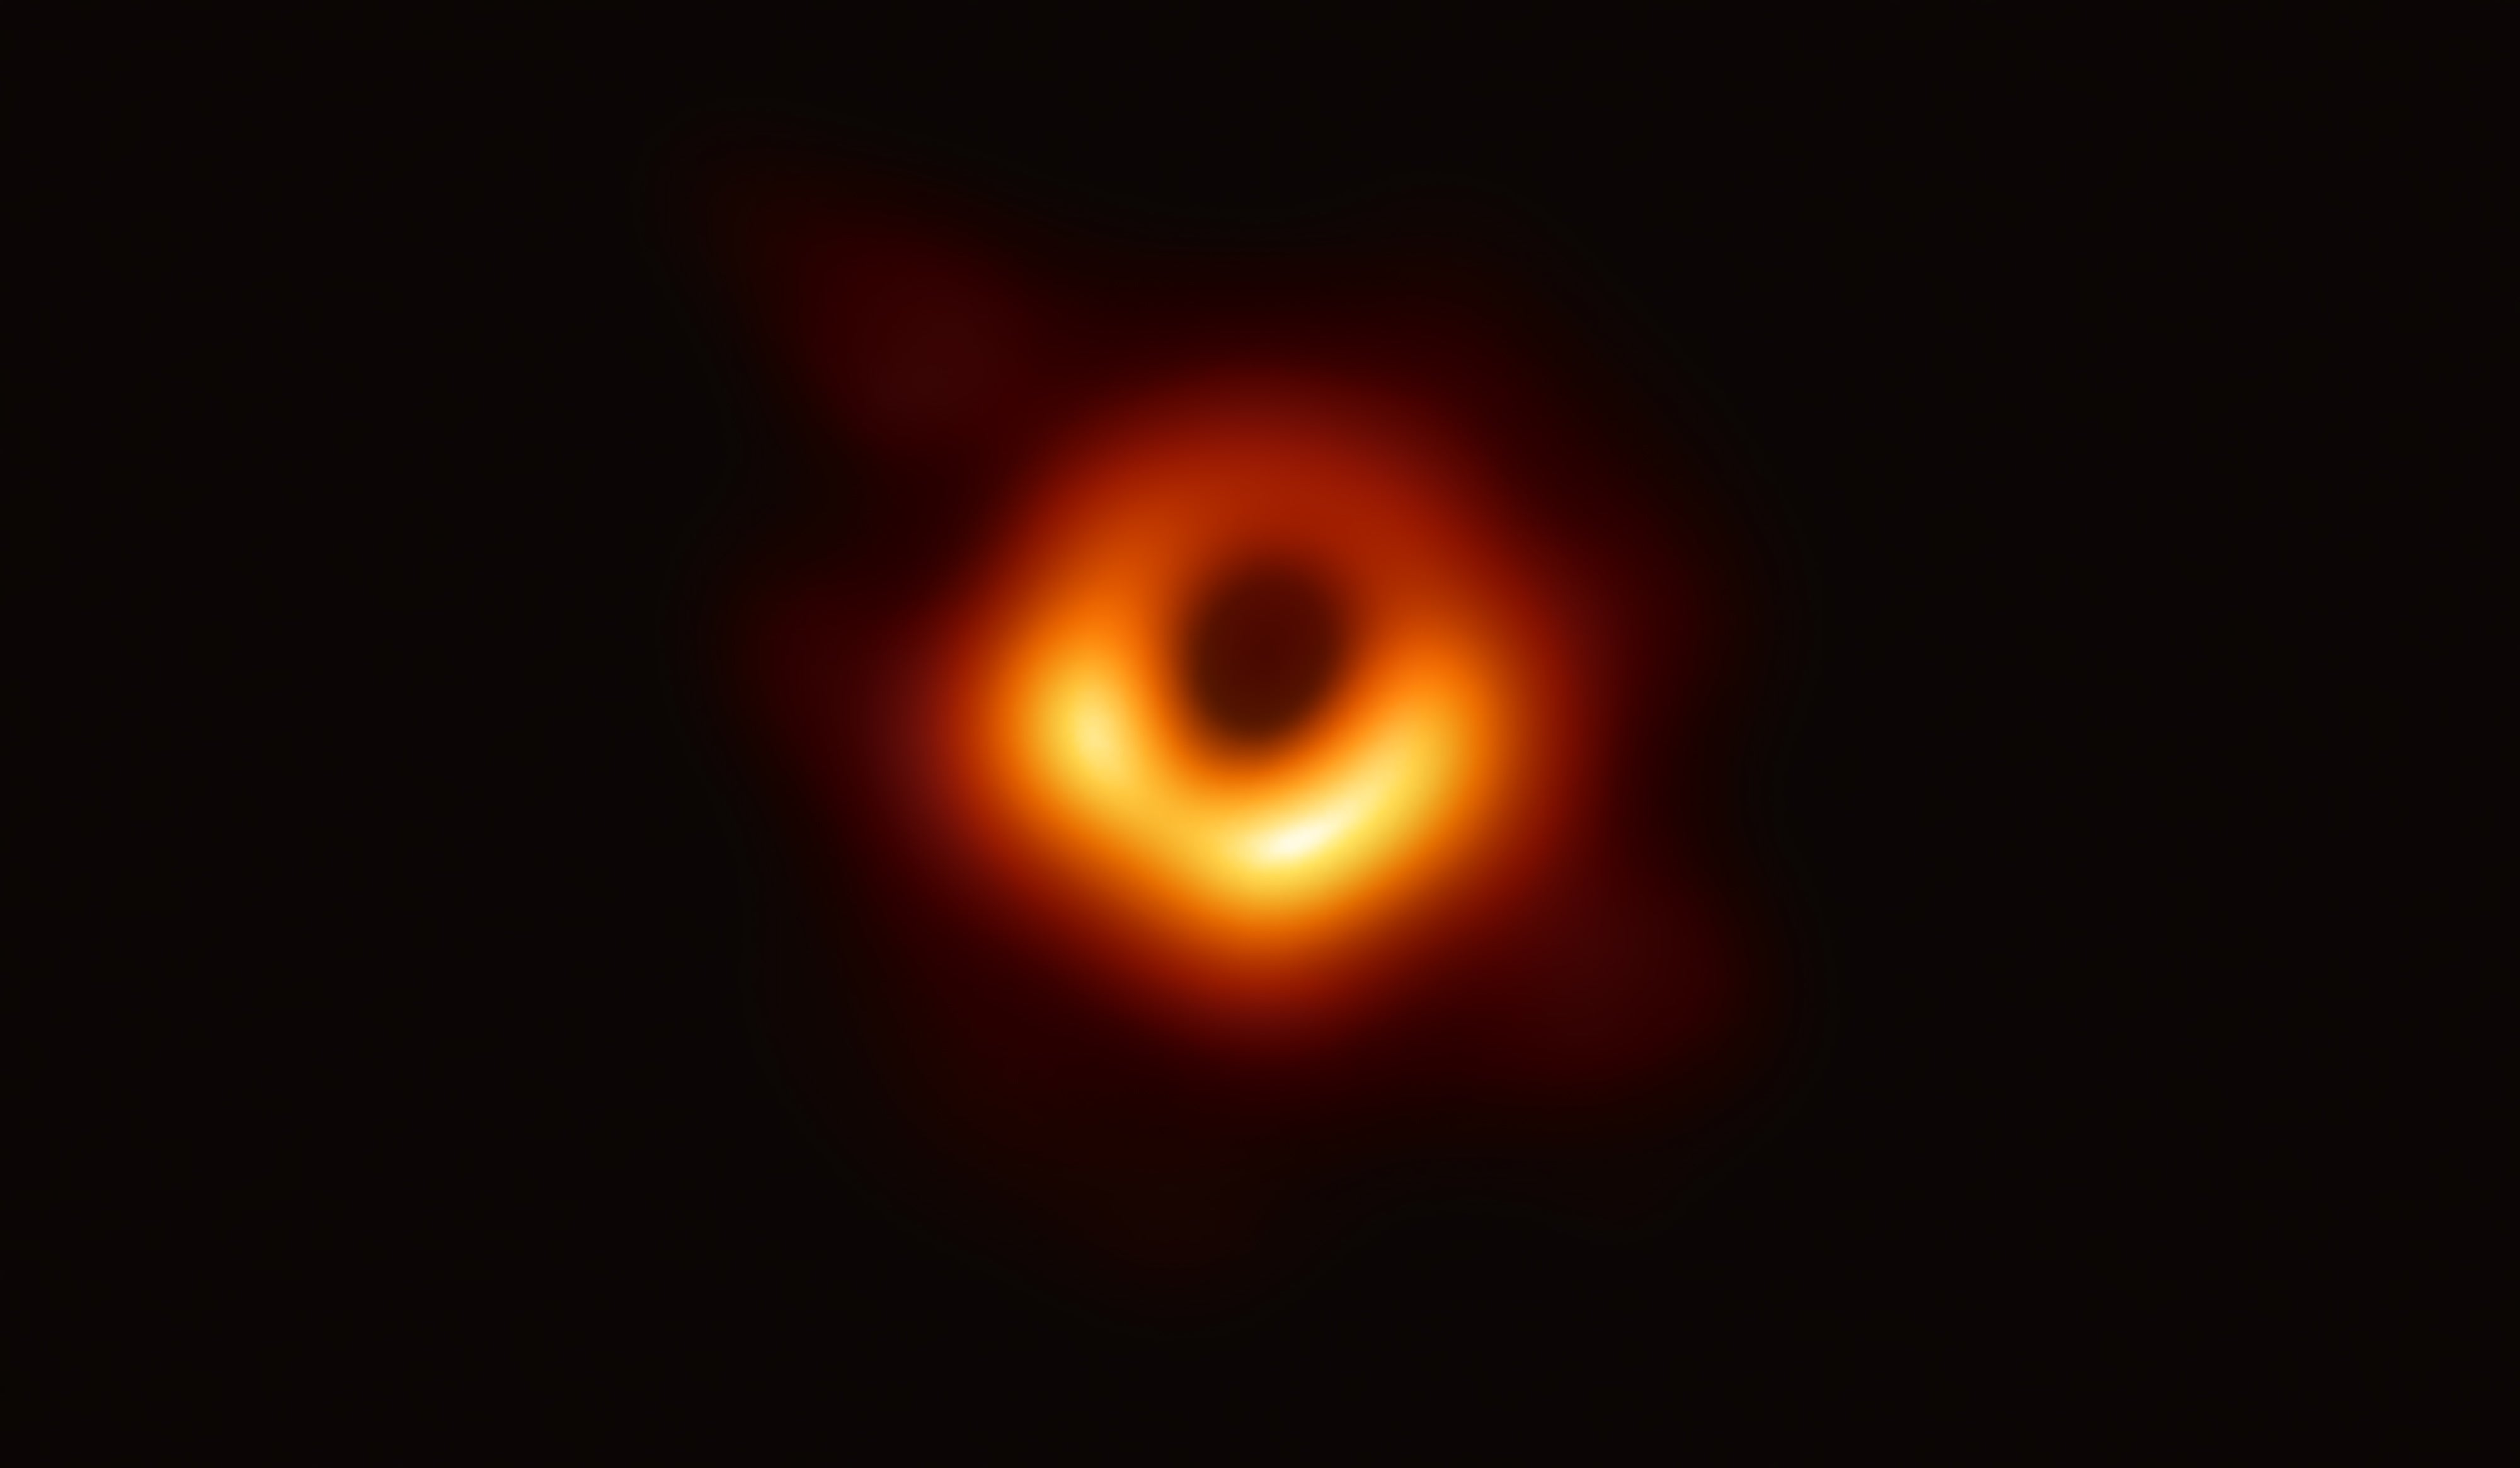 The photo of the black hole. It appears as a blurry ring of red and yellow light, dimmer on one side, with a flare of light radiating from that ring.